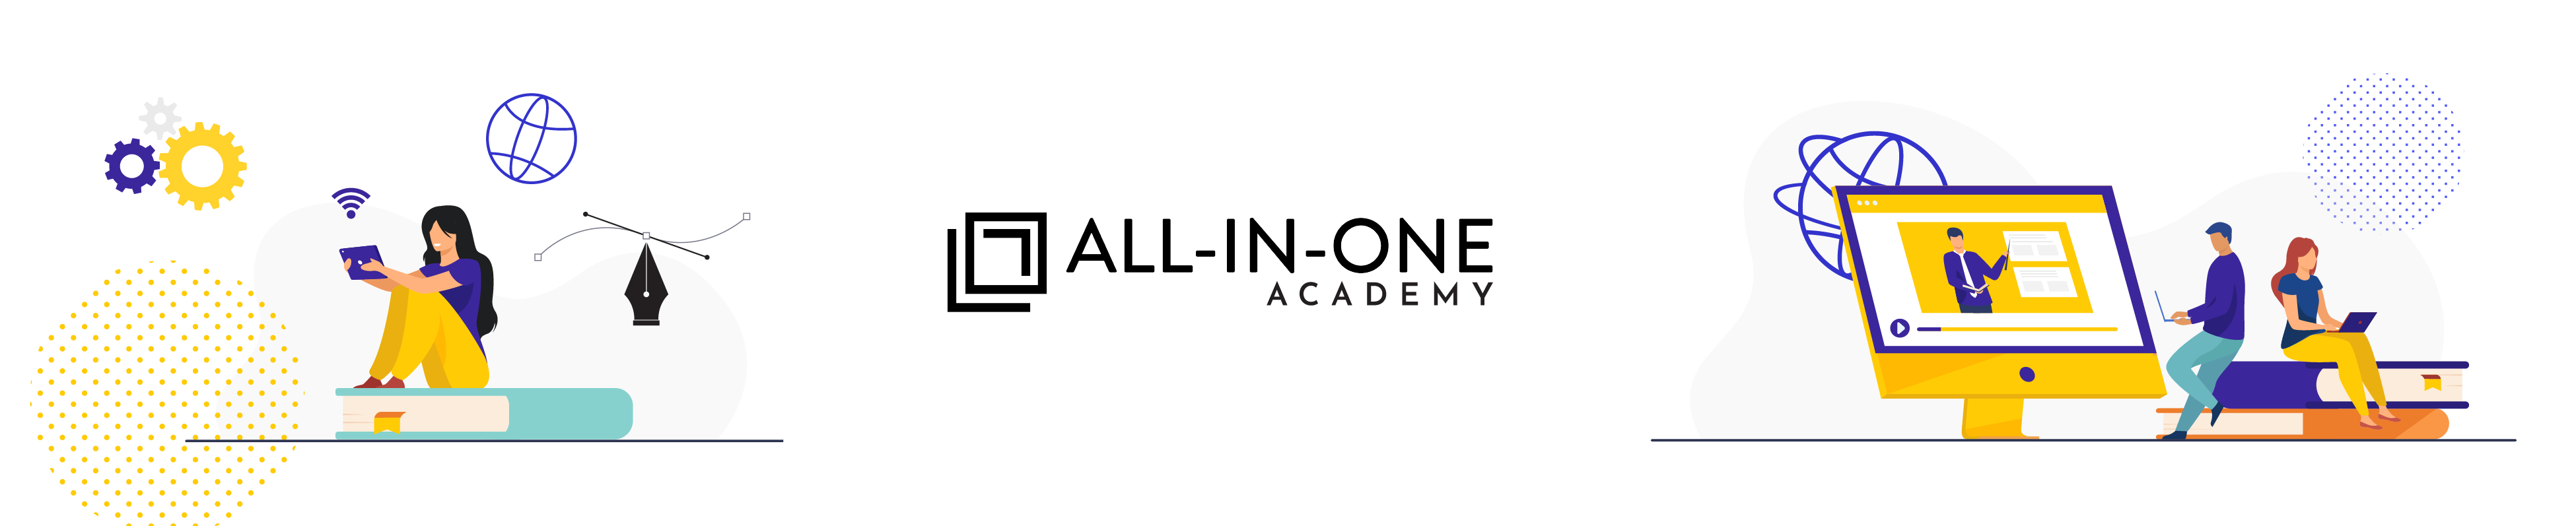 https://all-in-one-connect.com/wp-content/uploads/2021/09/1187821_AIOAcademy-SM-Title-Image_Academy-linkedin_092121-e1632465137299.png